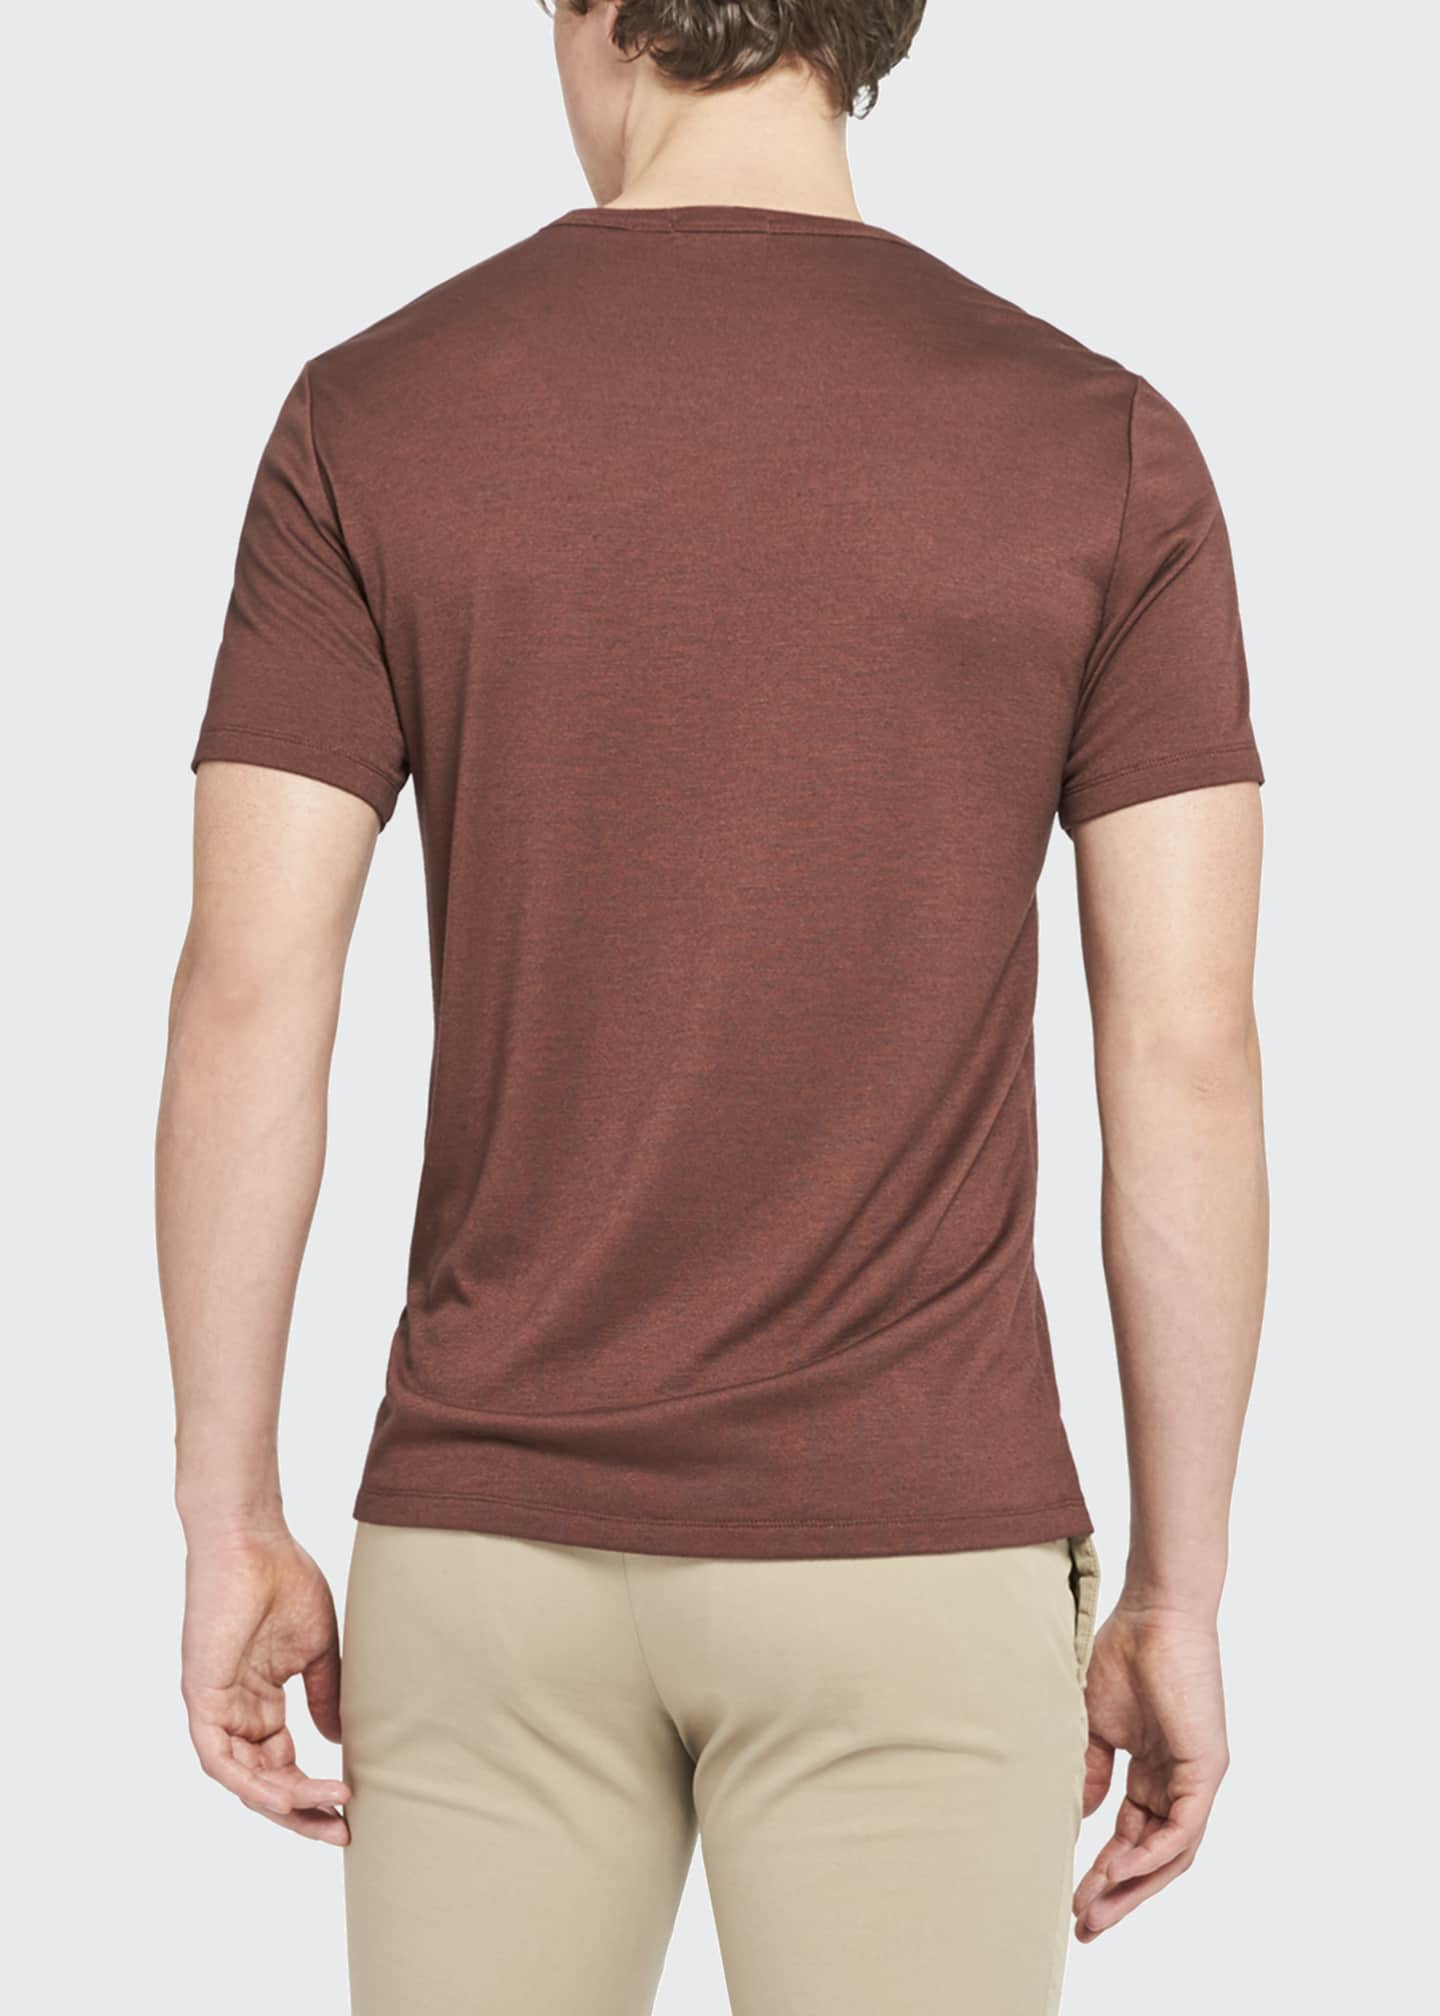 Image 2 of 3: Men's Anemone Essential T-Shirt